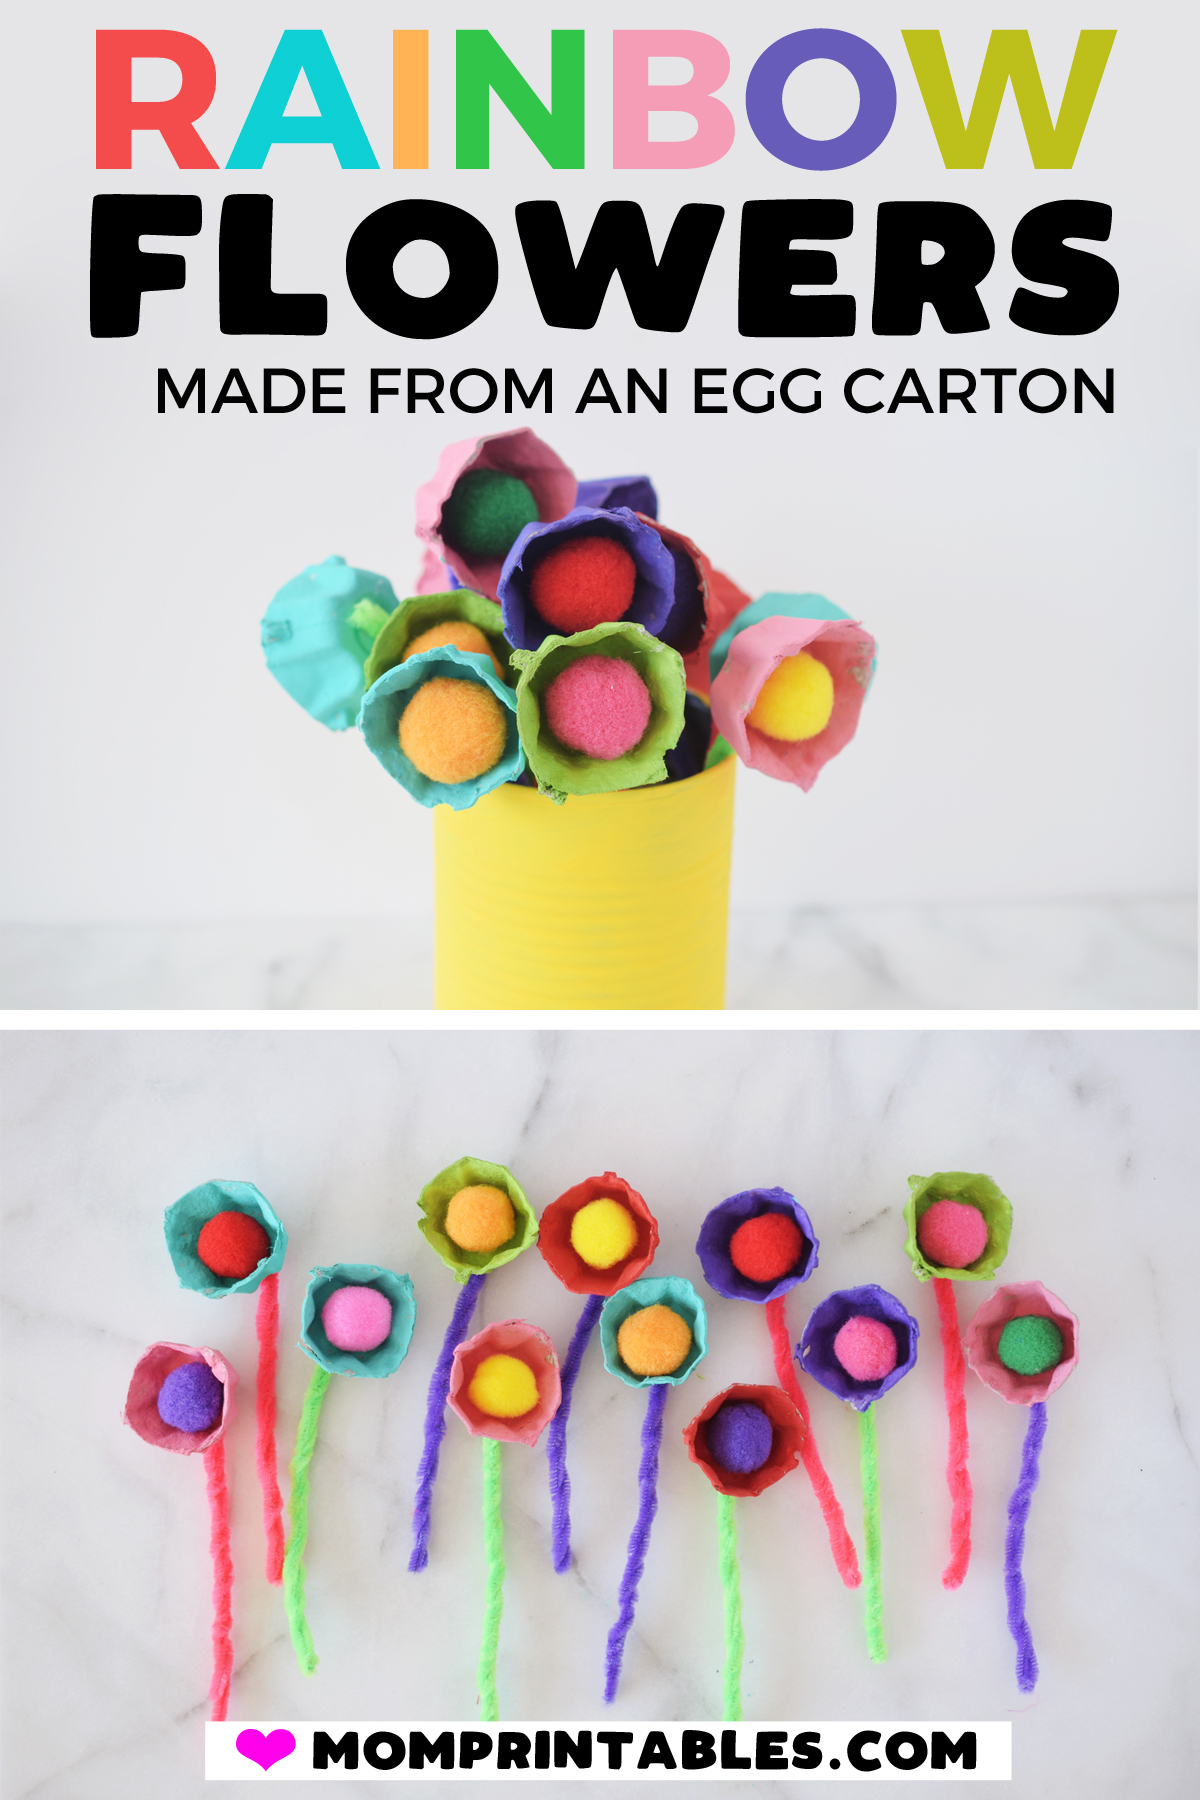 Egg Carton Flowers - Spring craft for kids. | DIY | plants | kids | how to make | preschool | wedding | tutorial | easy |  garland | lights | toddlers | simple | craft | bouquet | spring | beautiful | mothers day | gifts | mom | paint | creative | garden | paper flowers | egg carton | children | upcycle